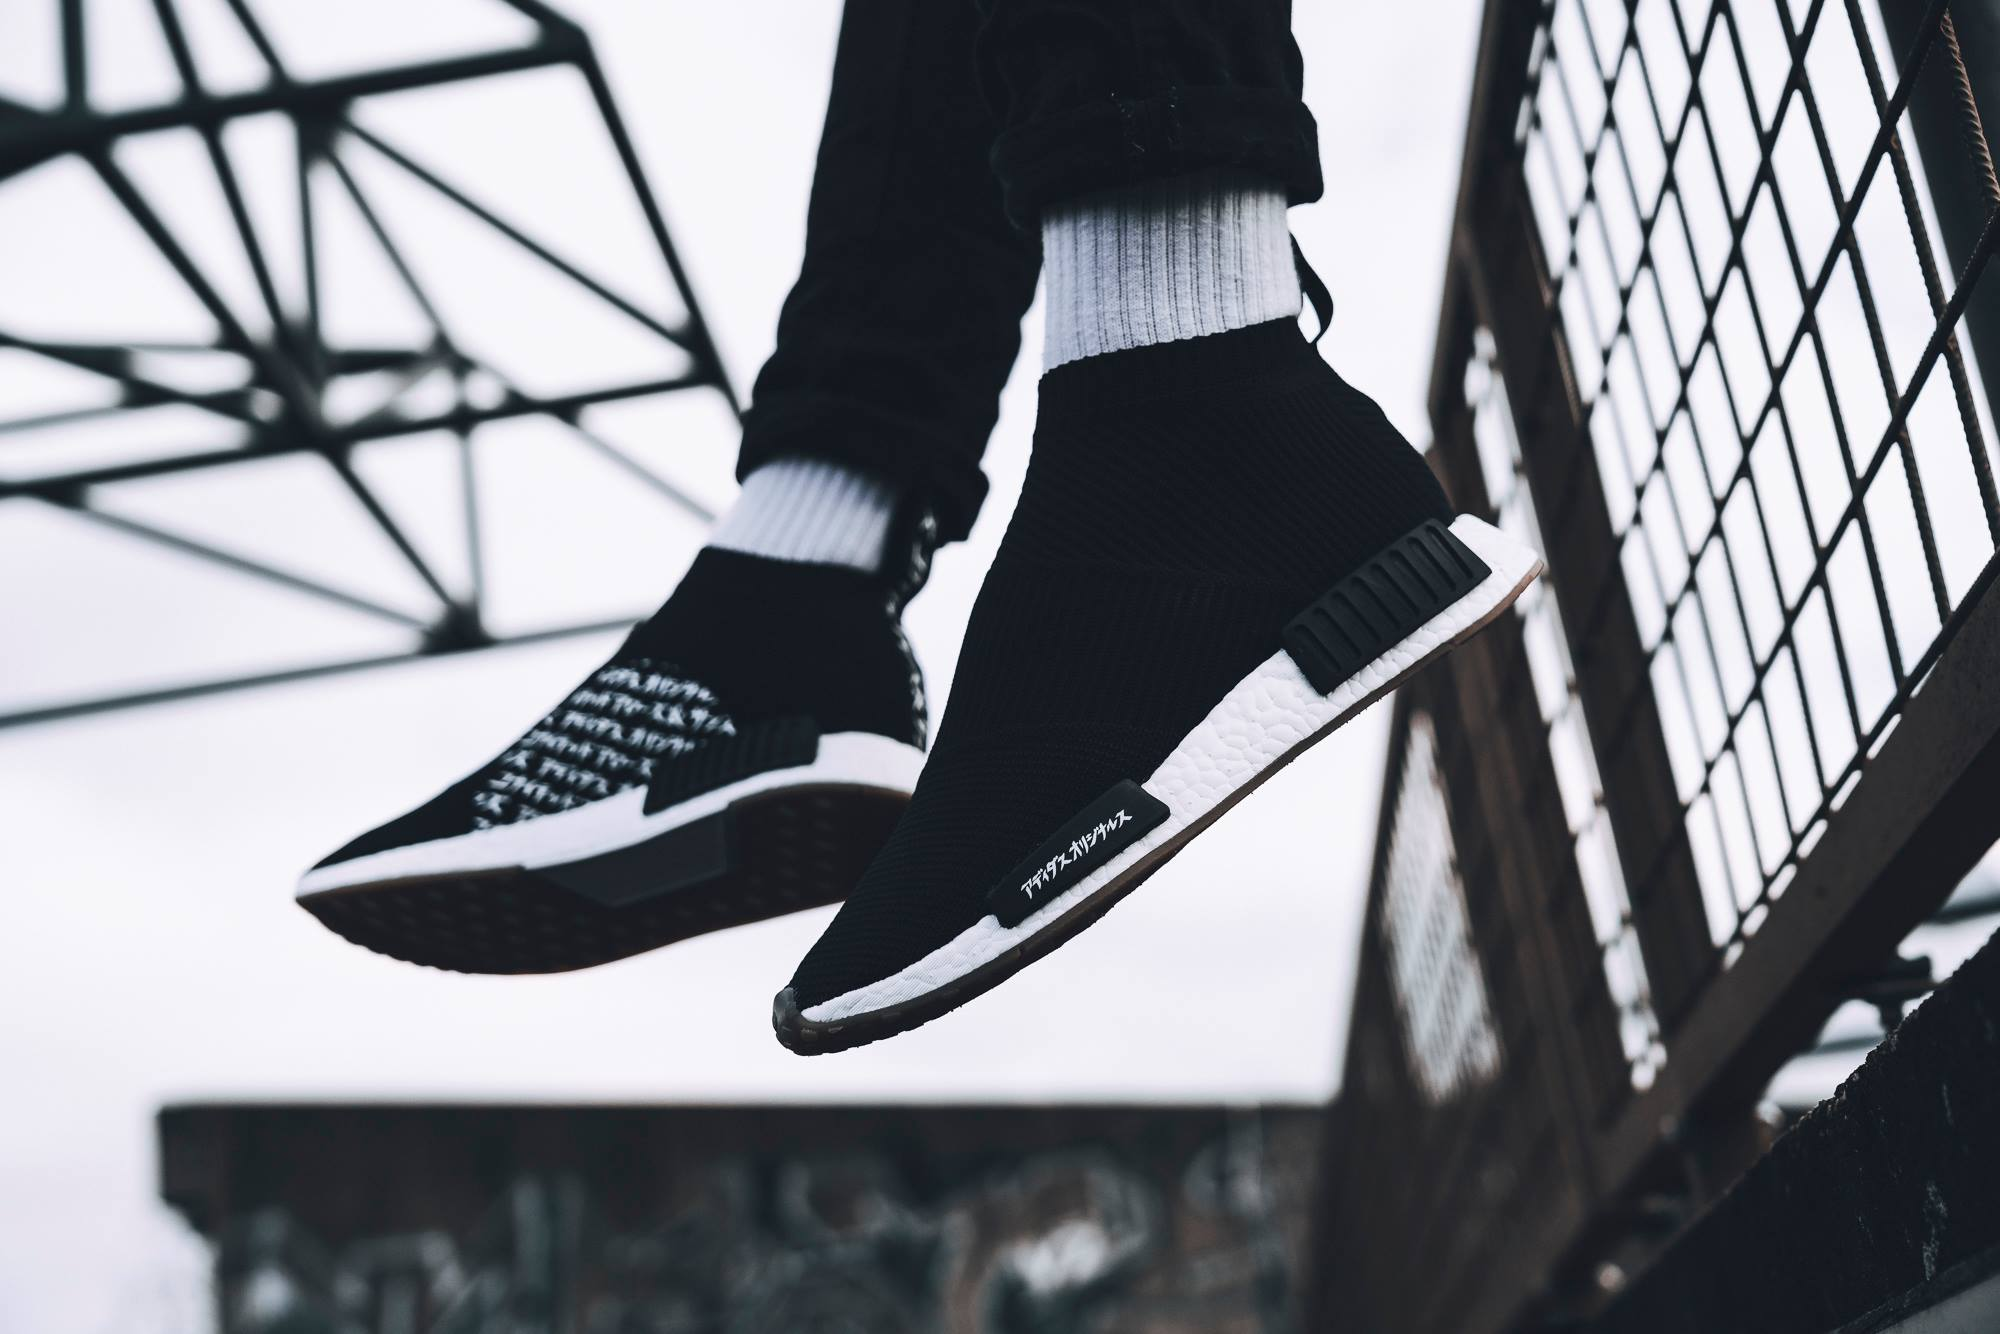 Adidas Nmd CS2 PK X United Arrows And Sons